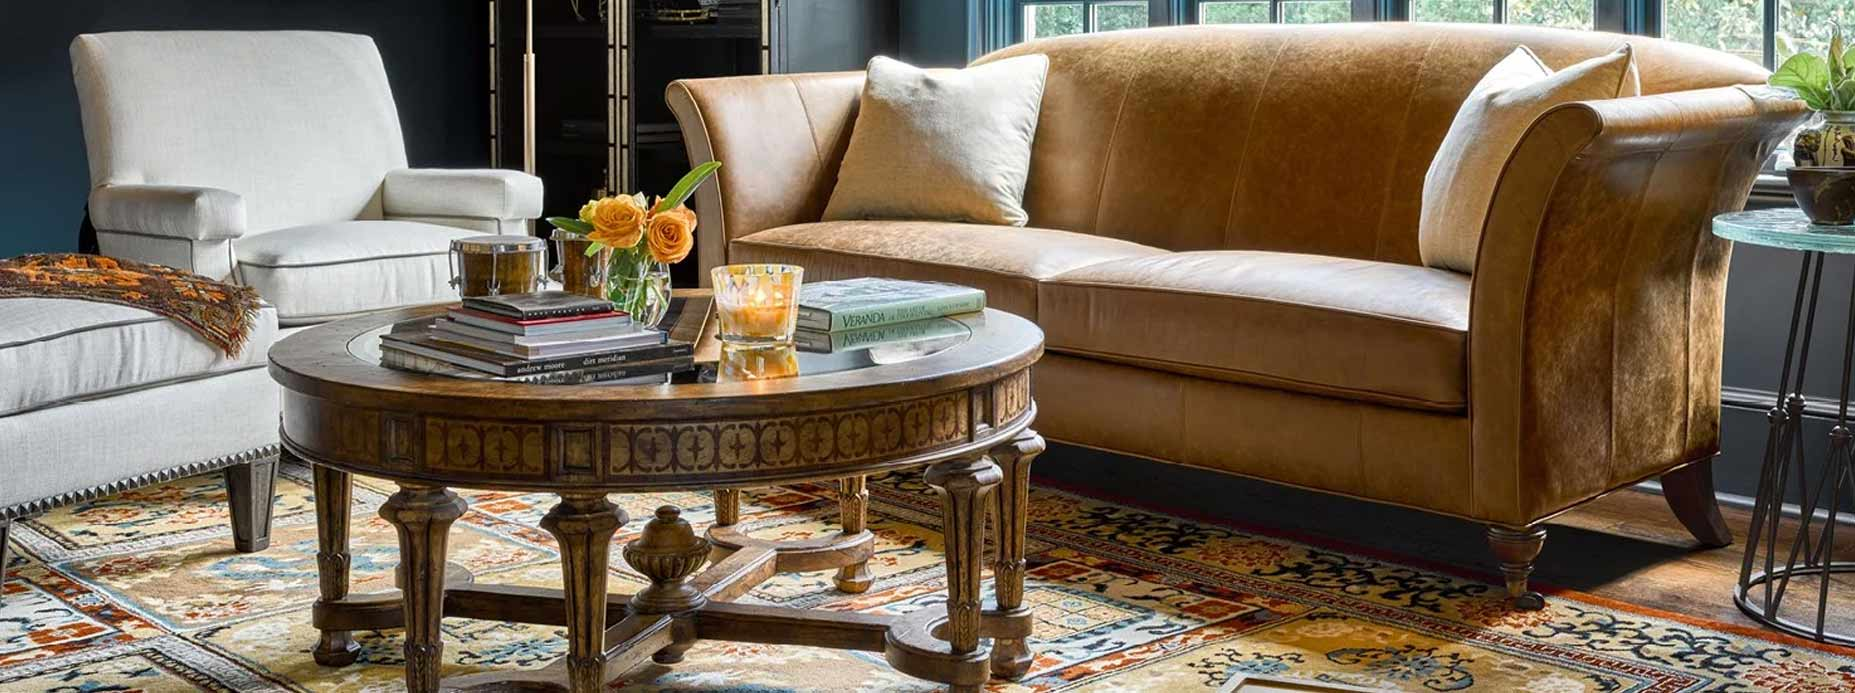 Fabulous Biltmore Furniture Discount Store And Showroom In Hickory Nc Gmtry Best Dining Table And Chair Ideas Images Gmtryco